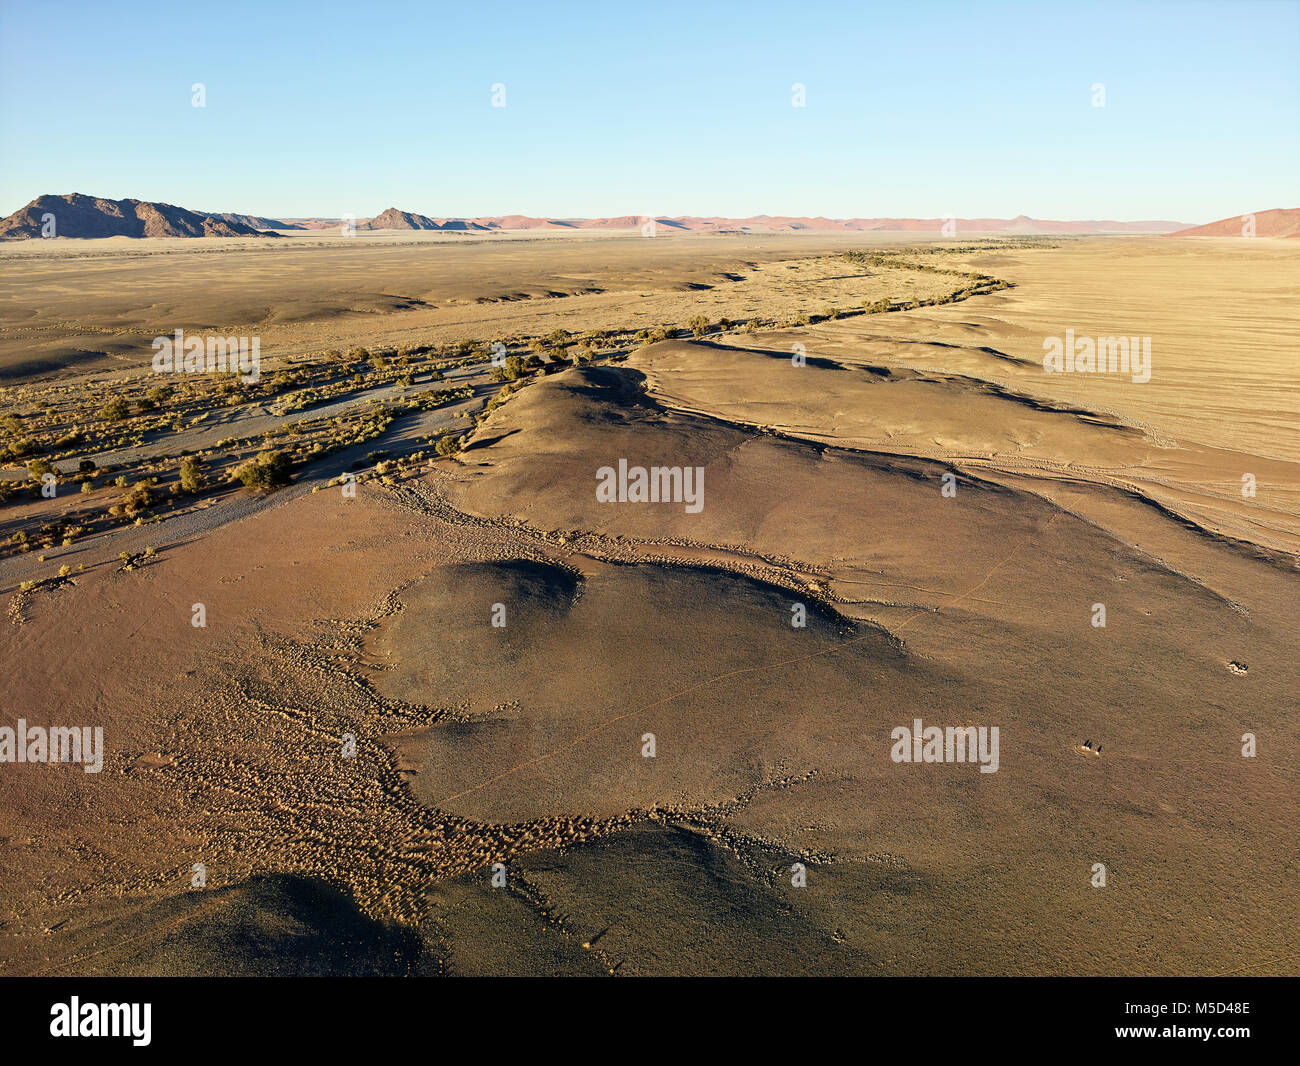 Aerial photo, view from hot air balloon, Tsaris mountains, Kulala Wilderness Reserve, Namib Desert, Hardap Region, Stock Photo